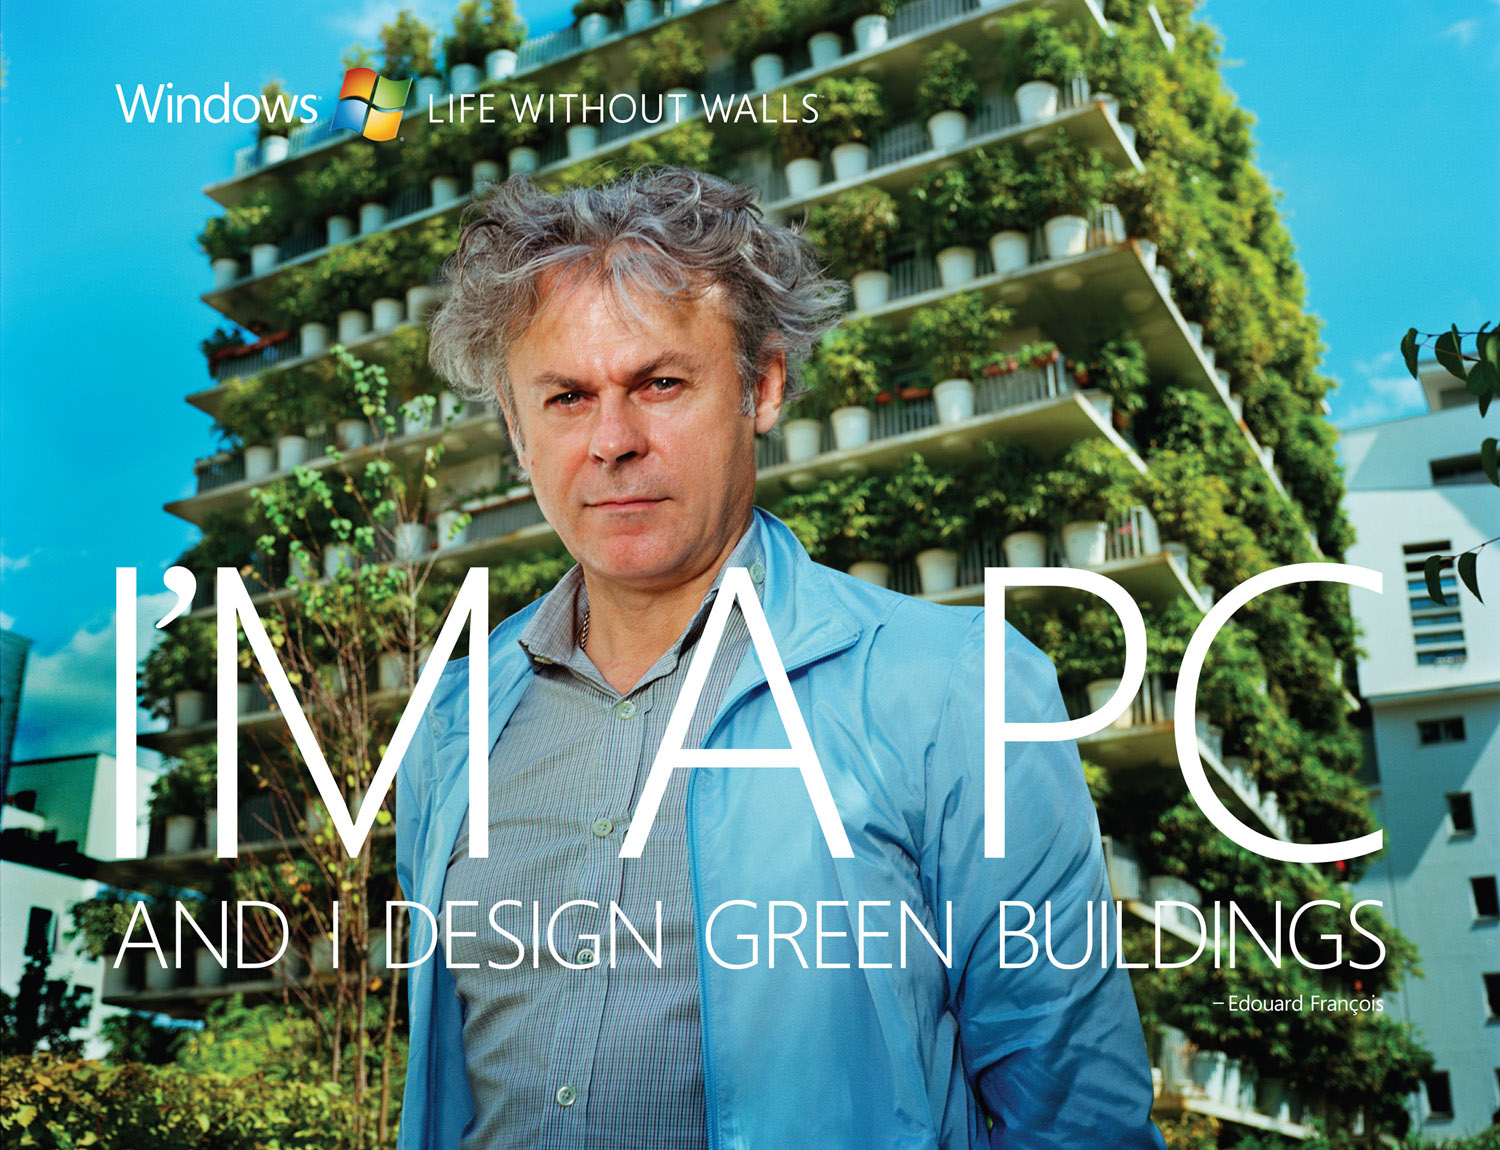 Microsoft, I'm a PC and I design green buildings. - Edouard François , © harlan erskine